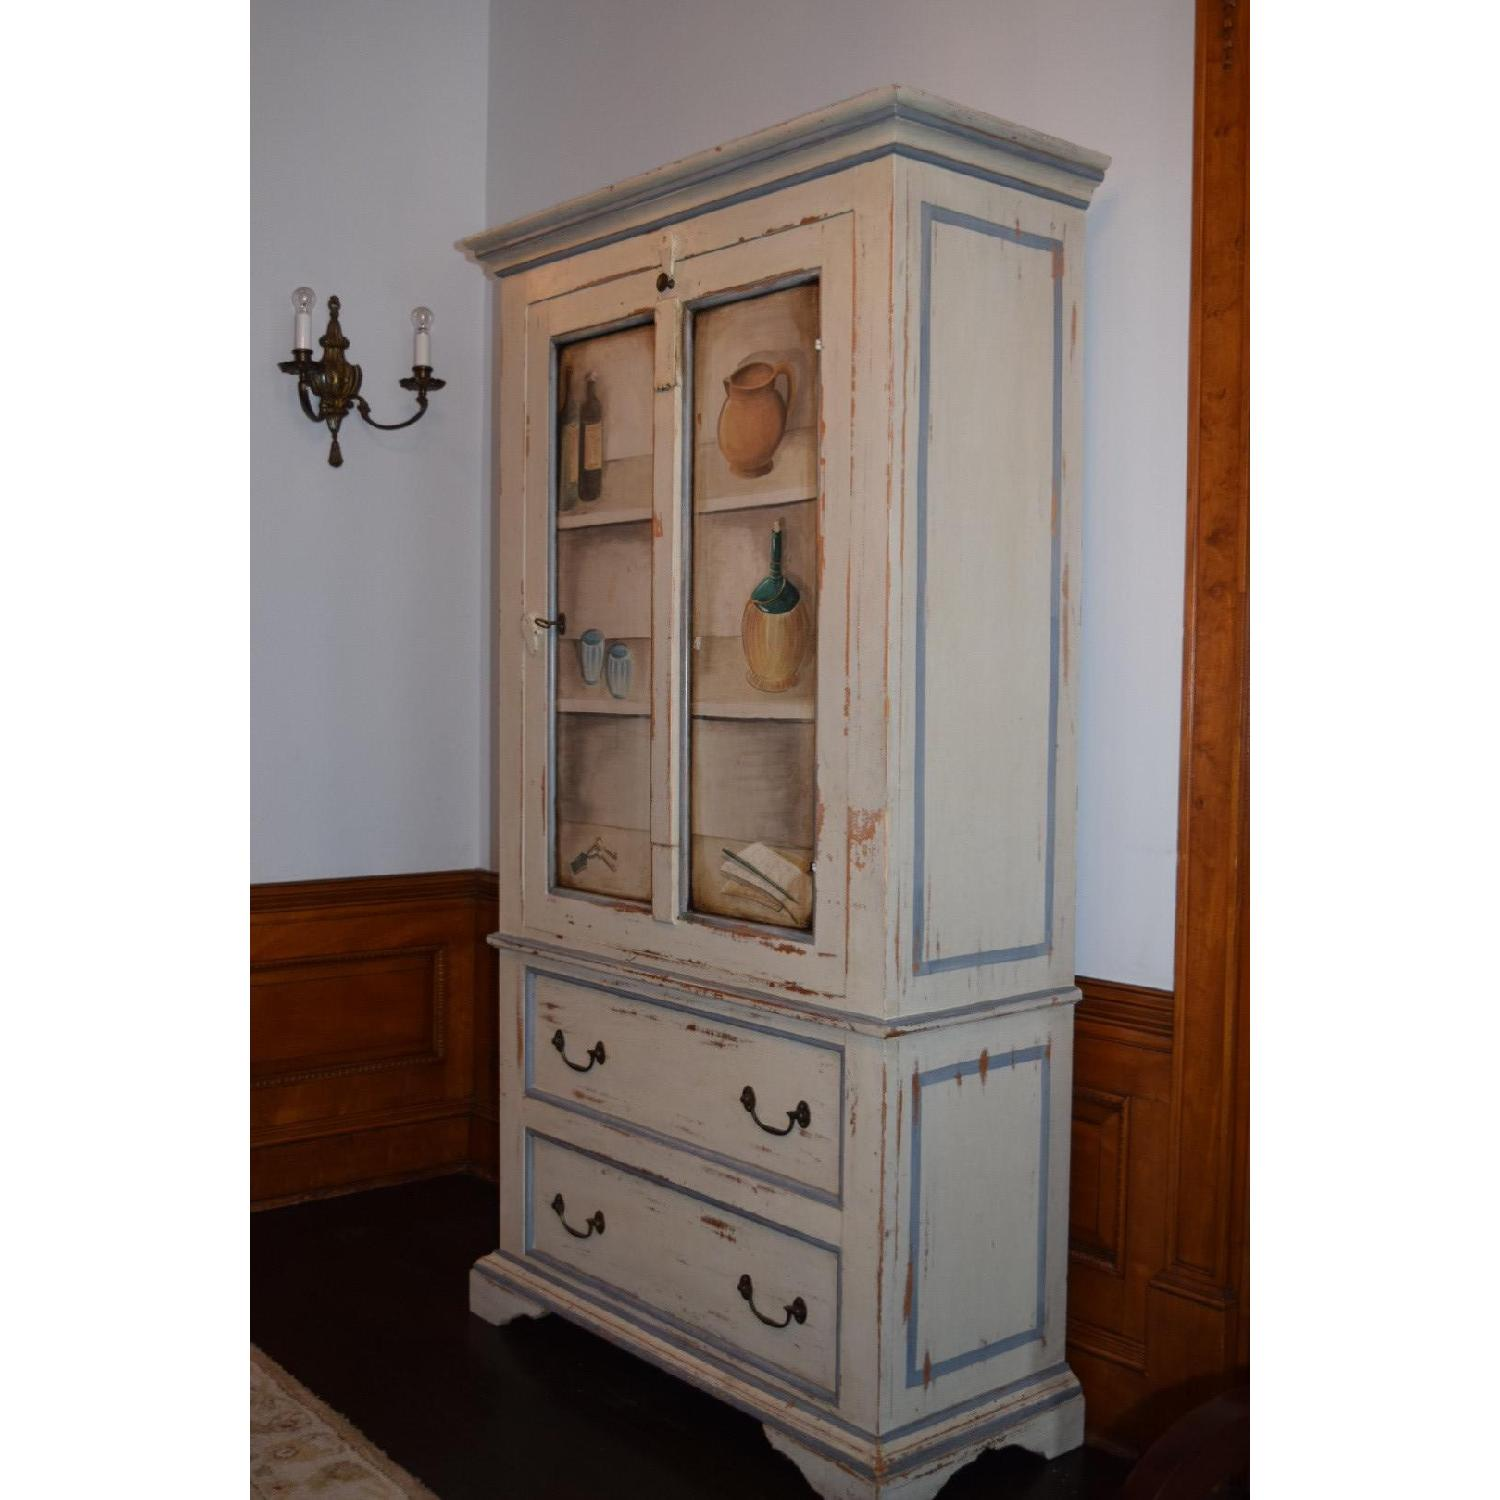 Shabby Chic Hand-Painted Distressed Cabinet - image-2